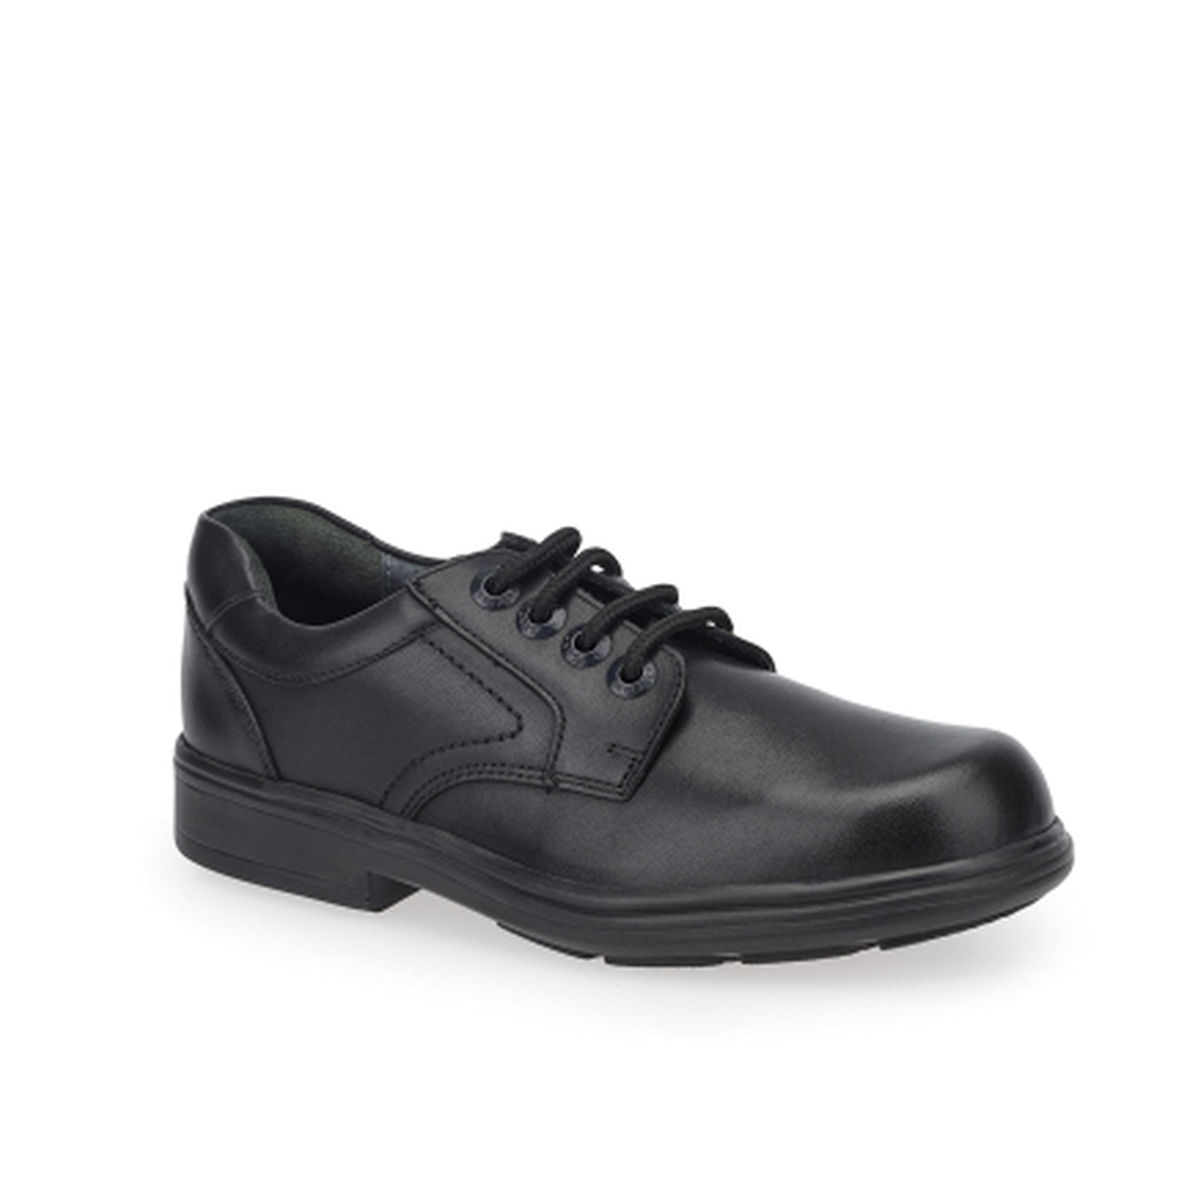 Start-rite Isaac Boys Leather Lace Up Shoe